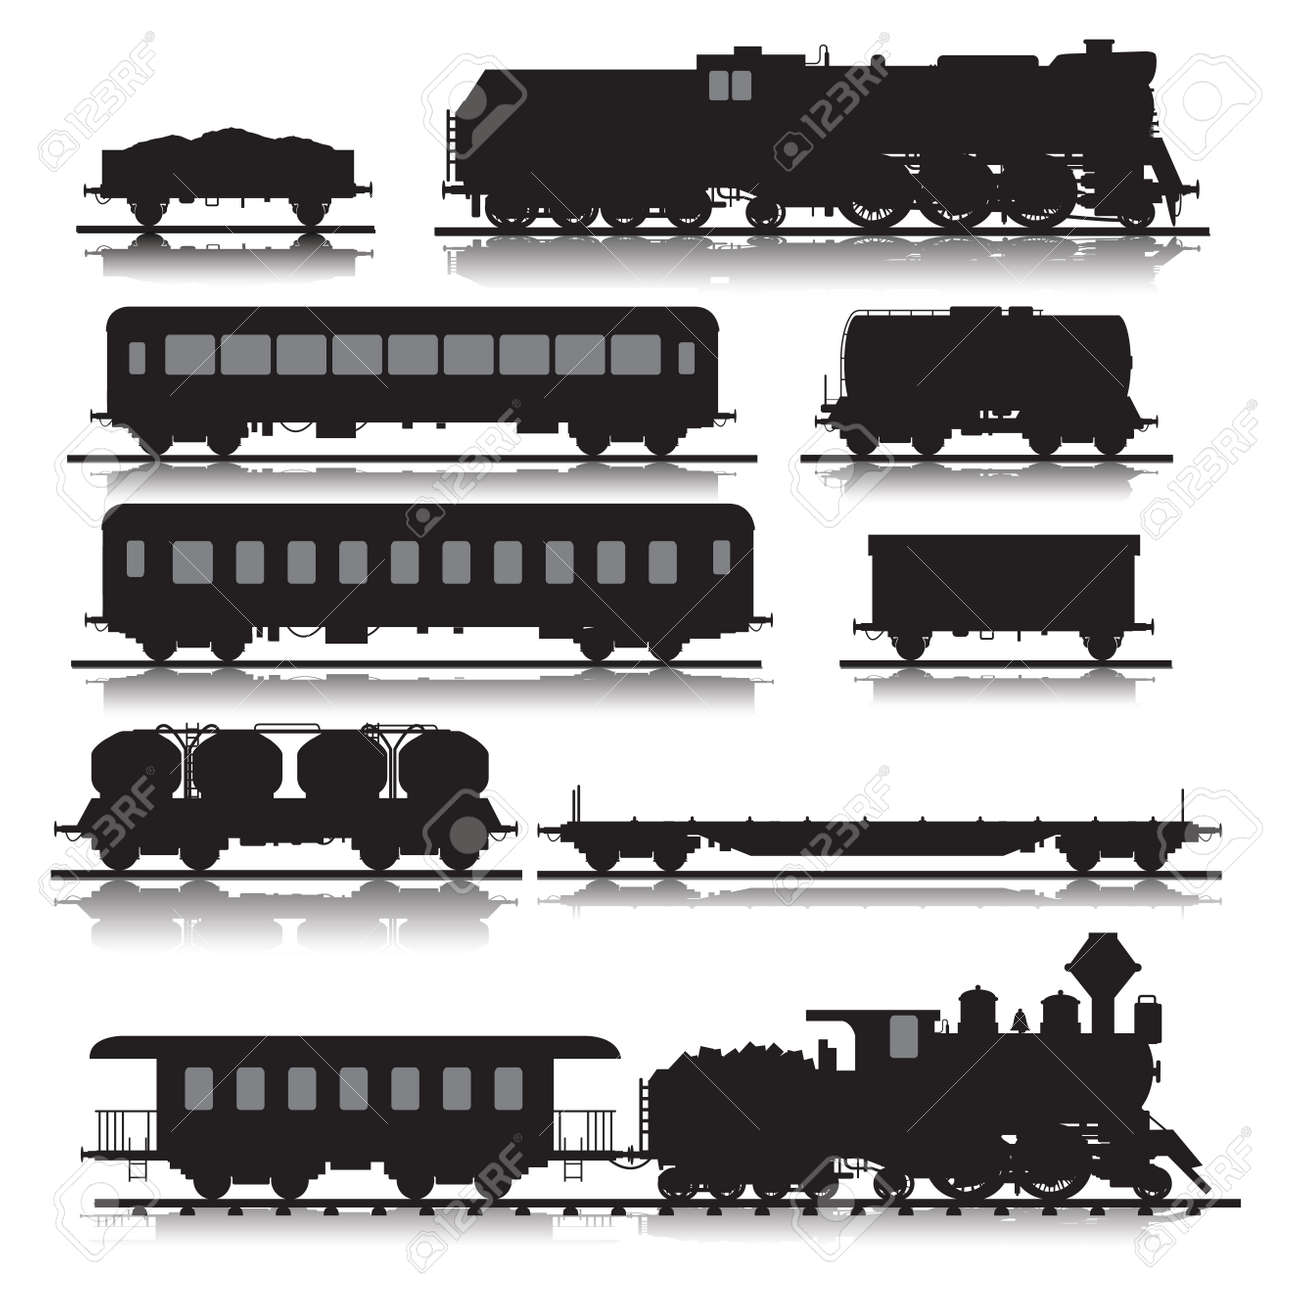 Vector illustration of railway trains consisting of locomotives, platforms for transportation of containers, covered wagons, cisterns, and rail cars - 46081426